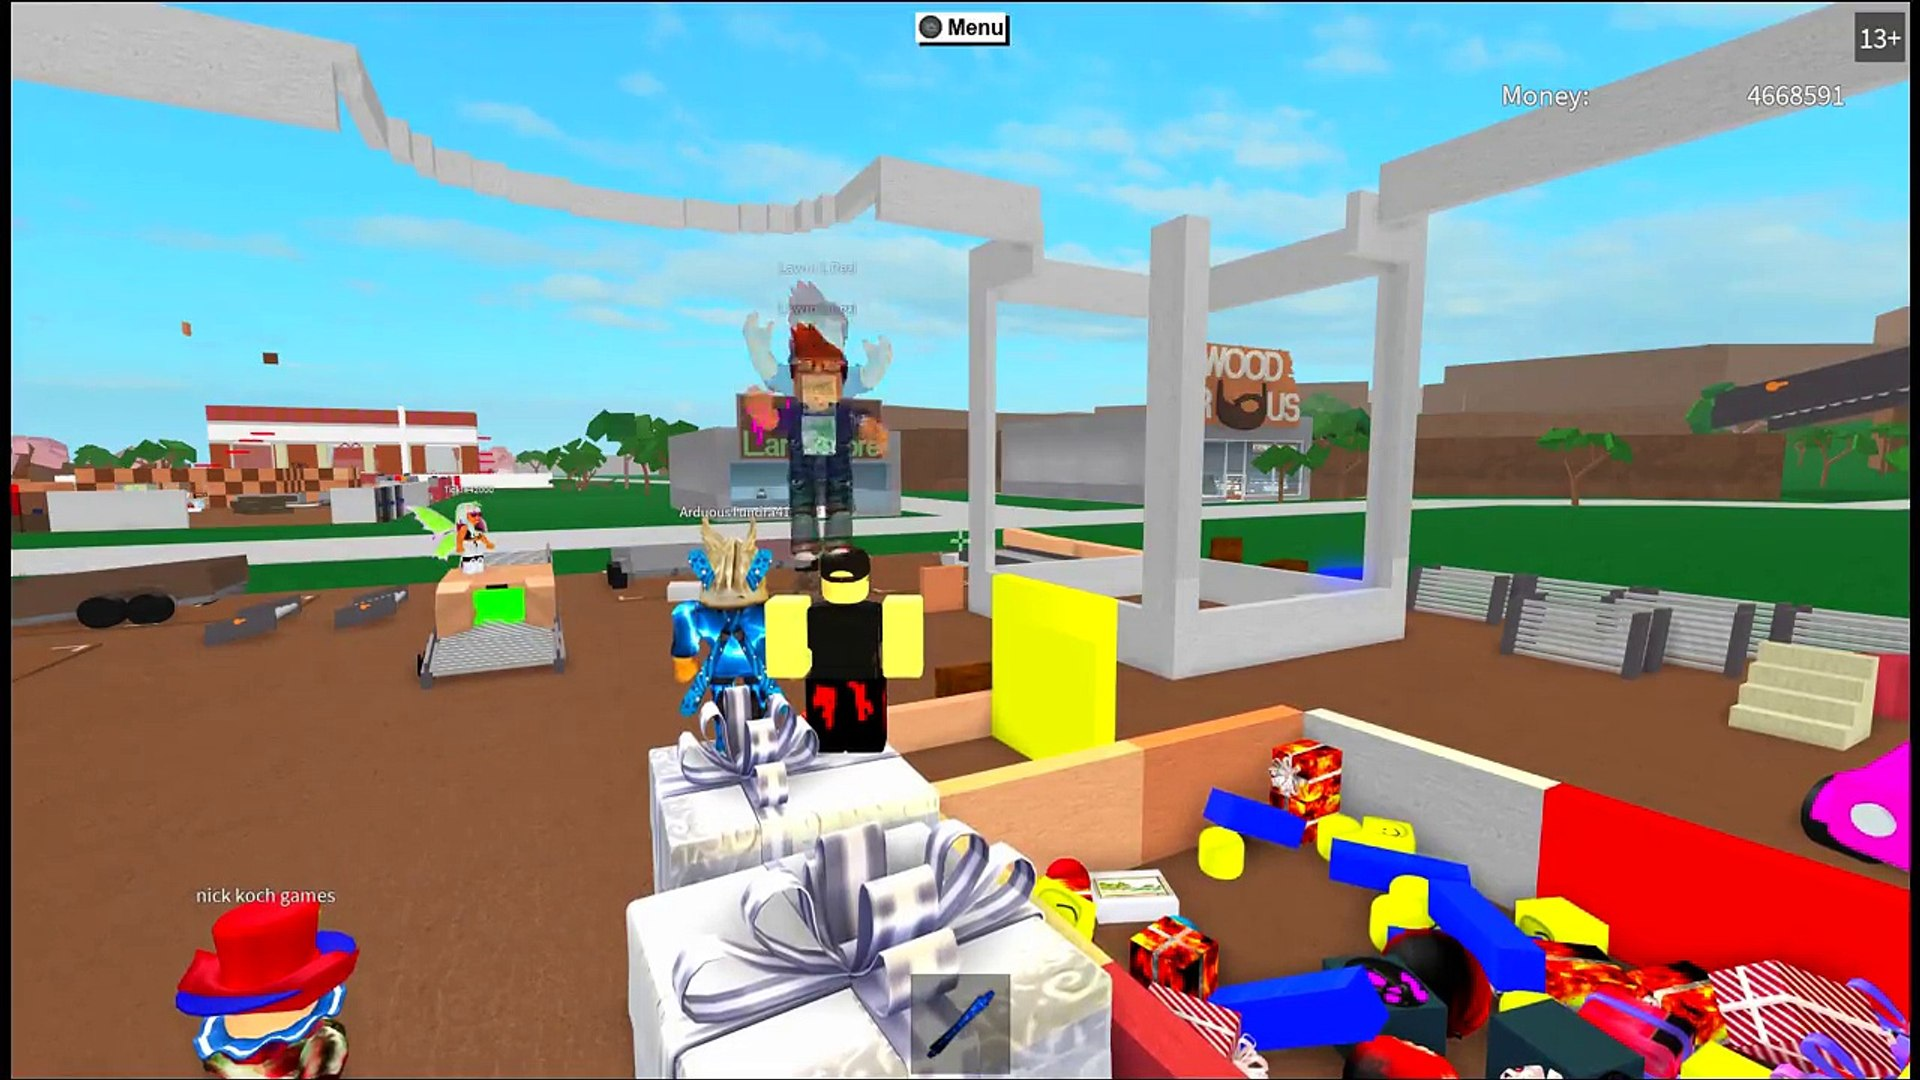 New Money Dupe Glitch Lumber Tycoon 2 Roblox Video Dailymotion